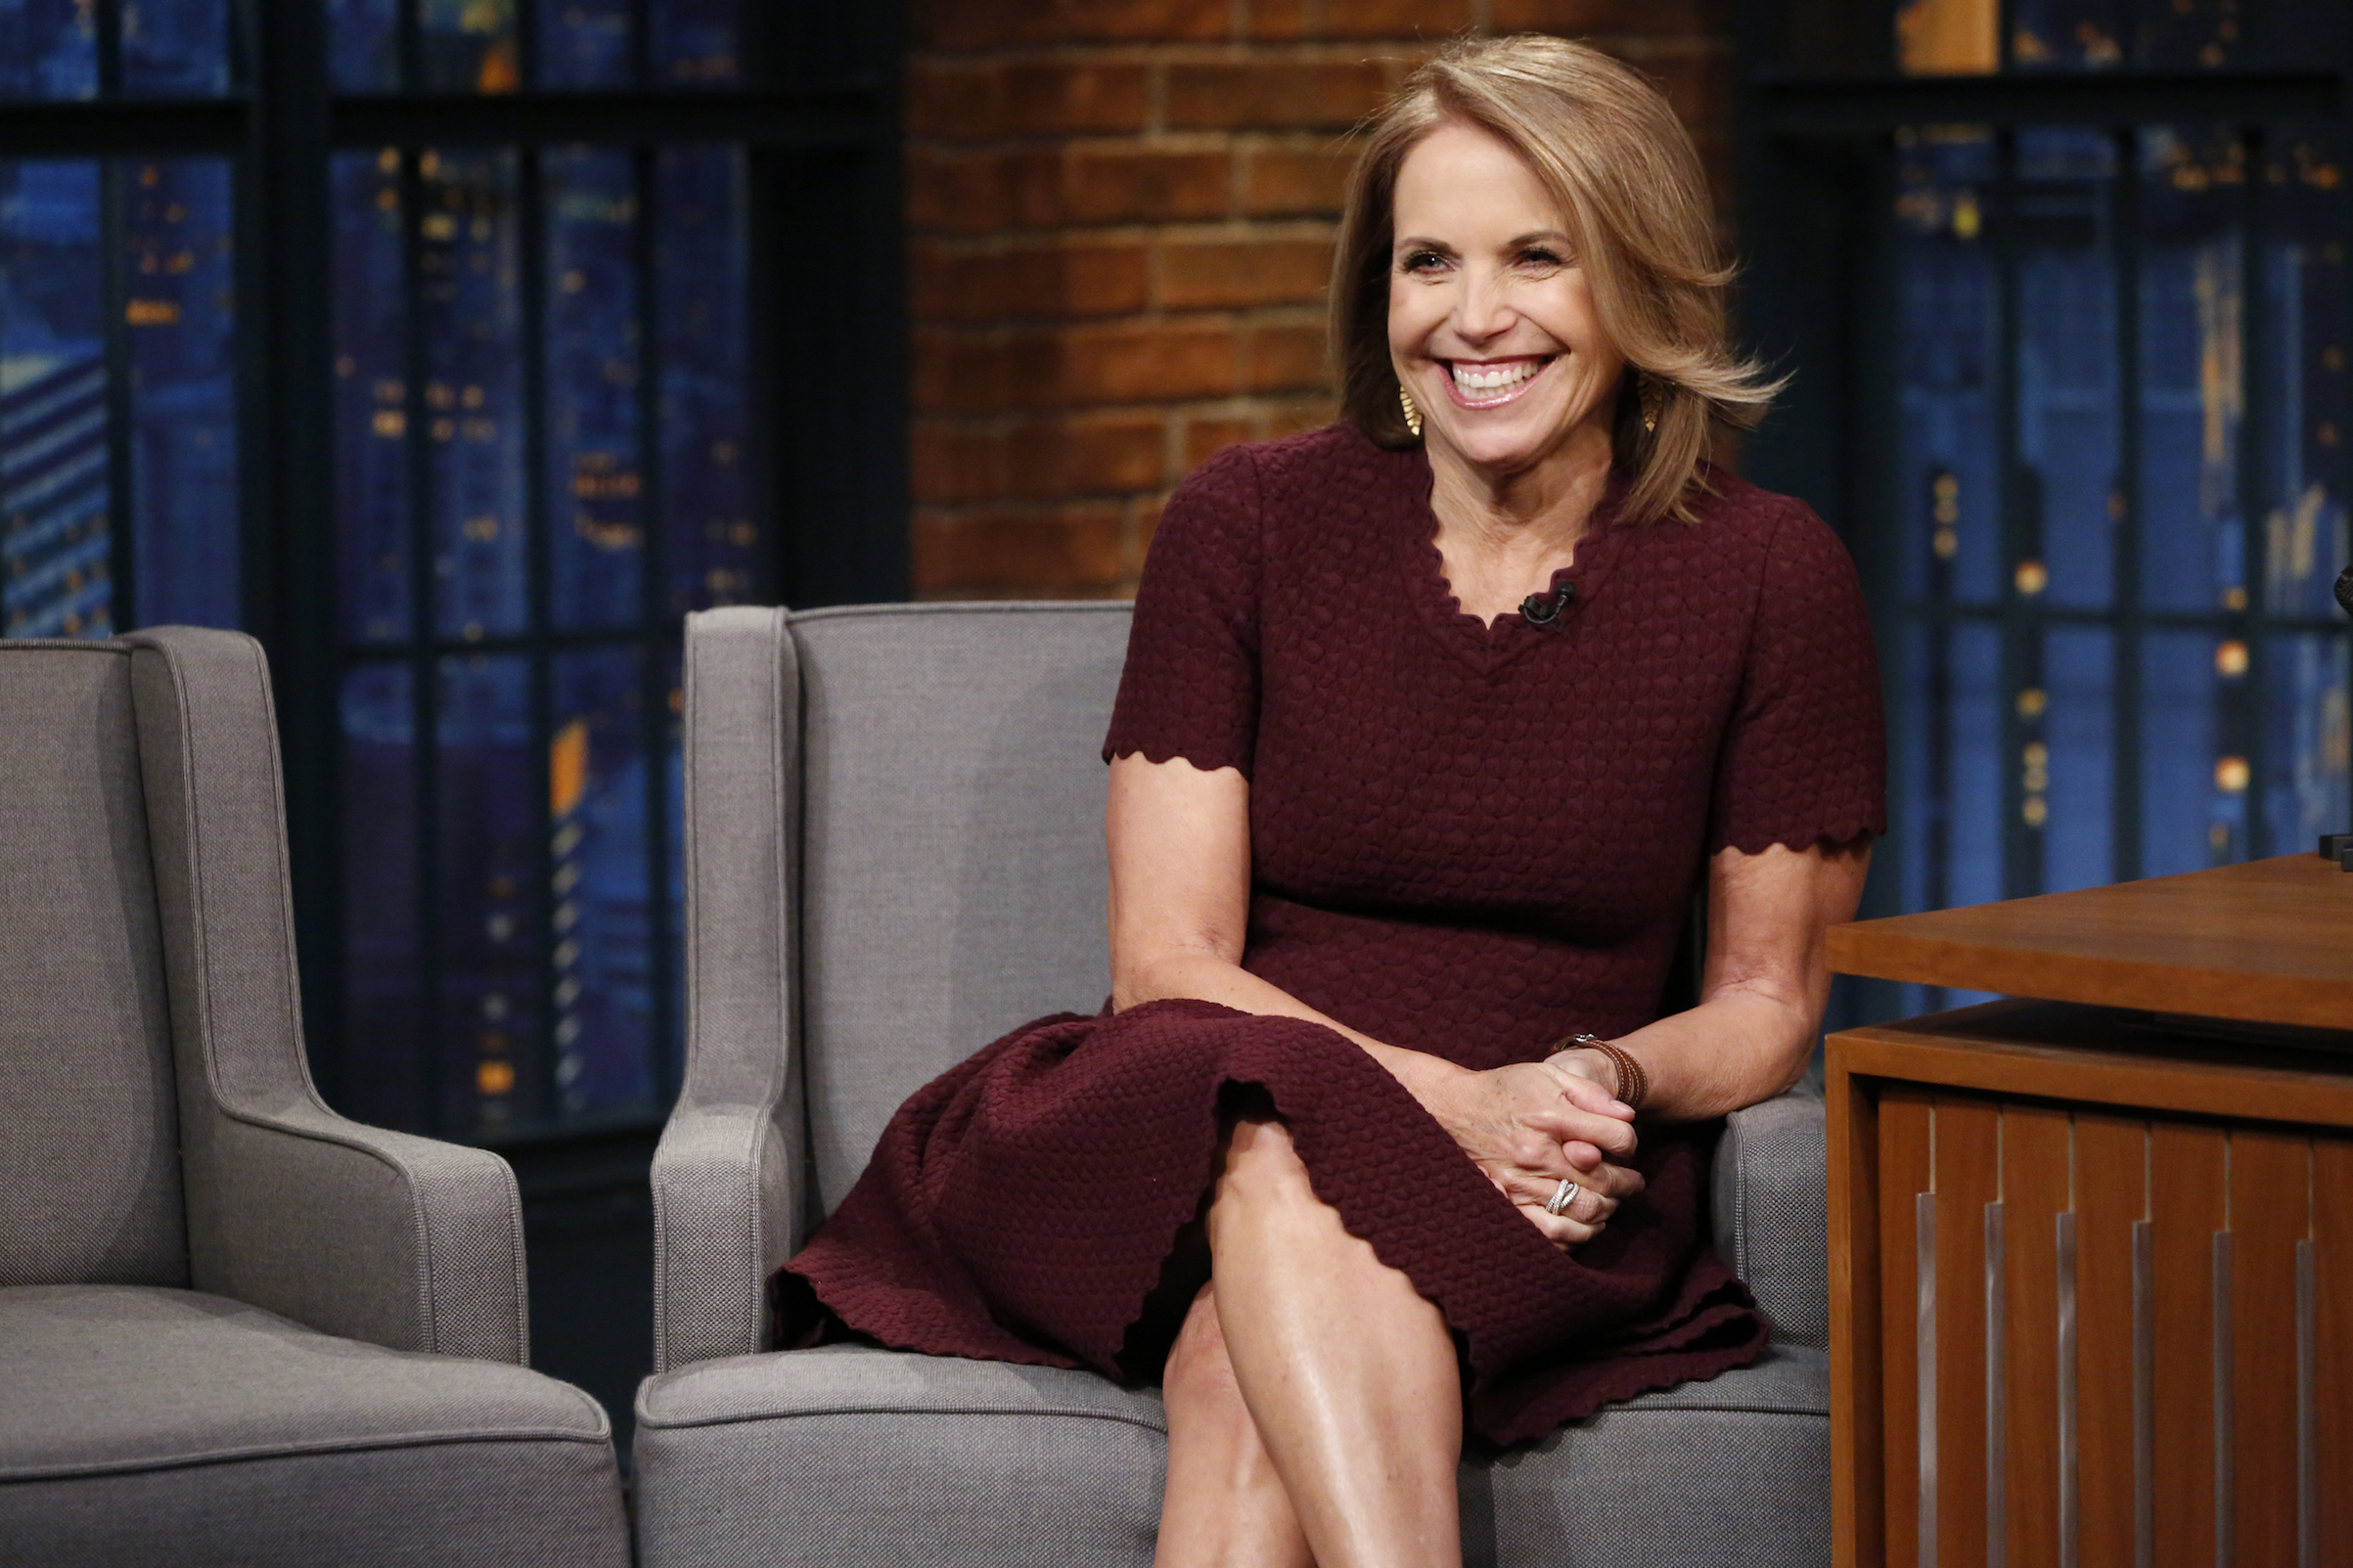 Katie Couric during an interview on  Late Night with Seth Meyers  on Jan. 25, 2017.